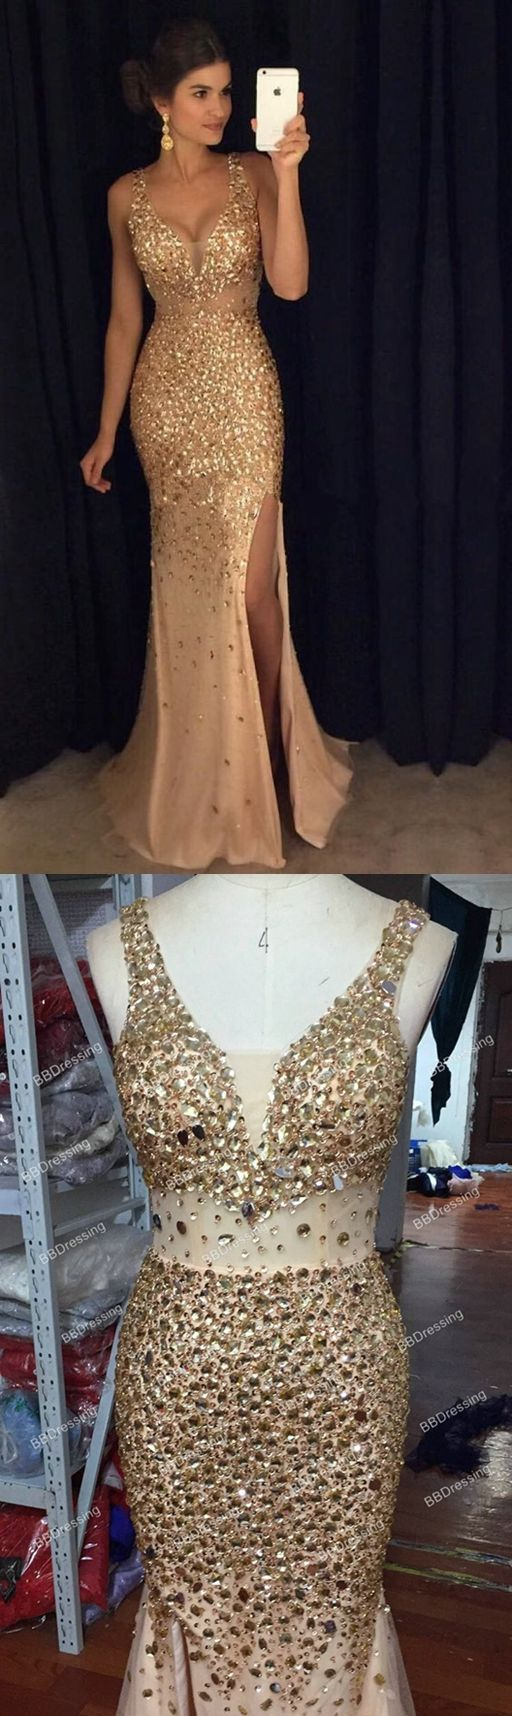 Real Photos ! 2017 Sexy Long Crystal Beaded Prom Dress With Slit Mermaid Prom Dresses Evening Gown Formal Wear: